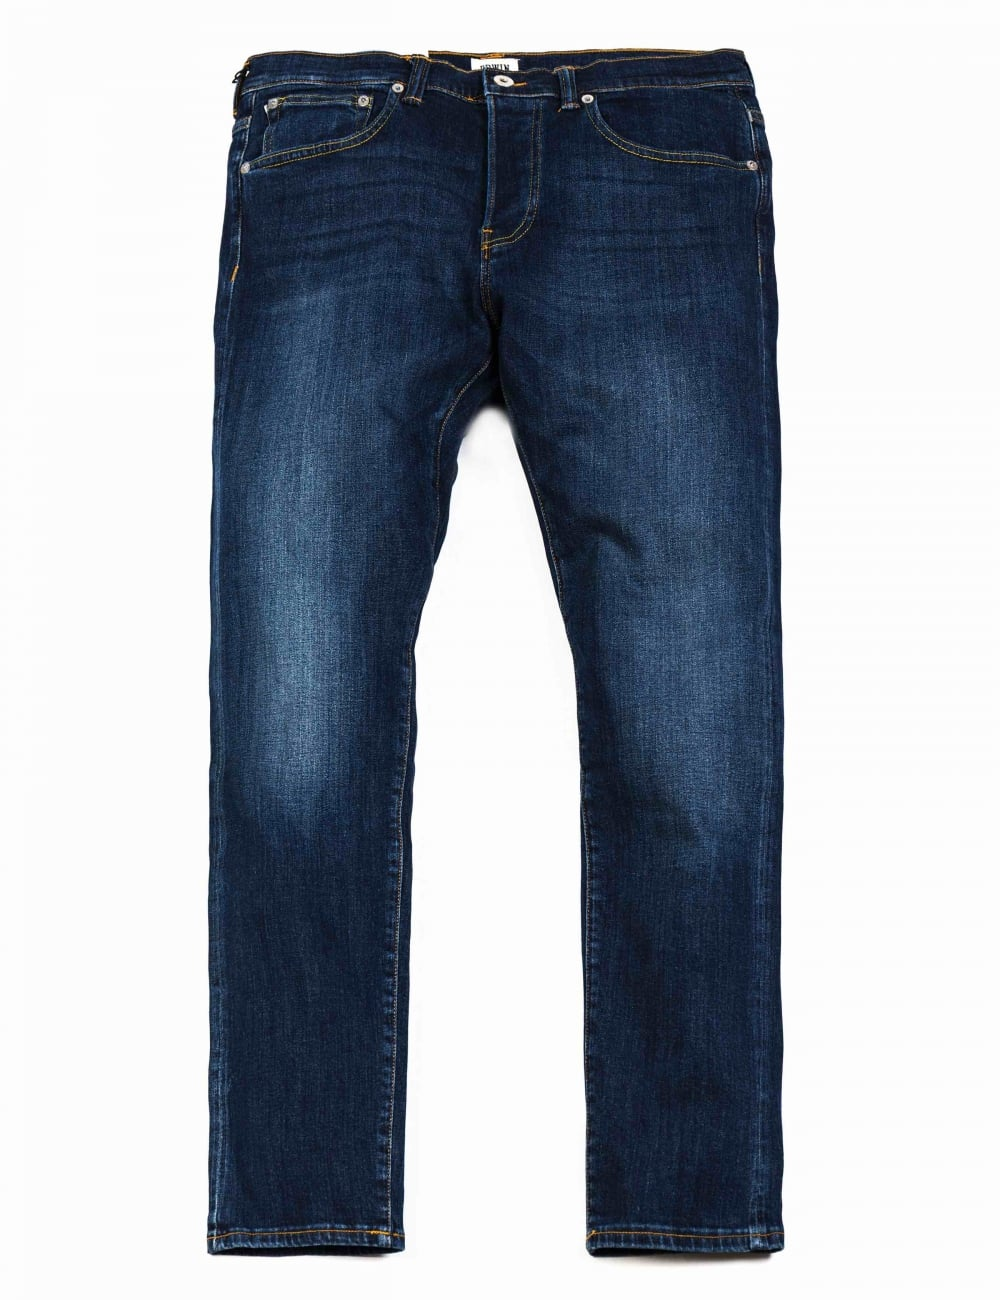 EDWIN ED 80 SLIM TAPERED FIT MENS JEANS CS RED LISTED SELVAGE DENIM BLAST WASH